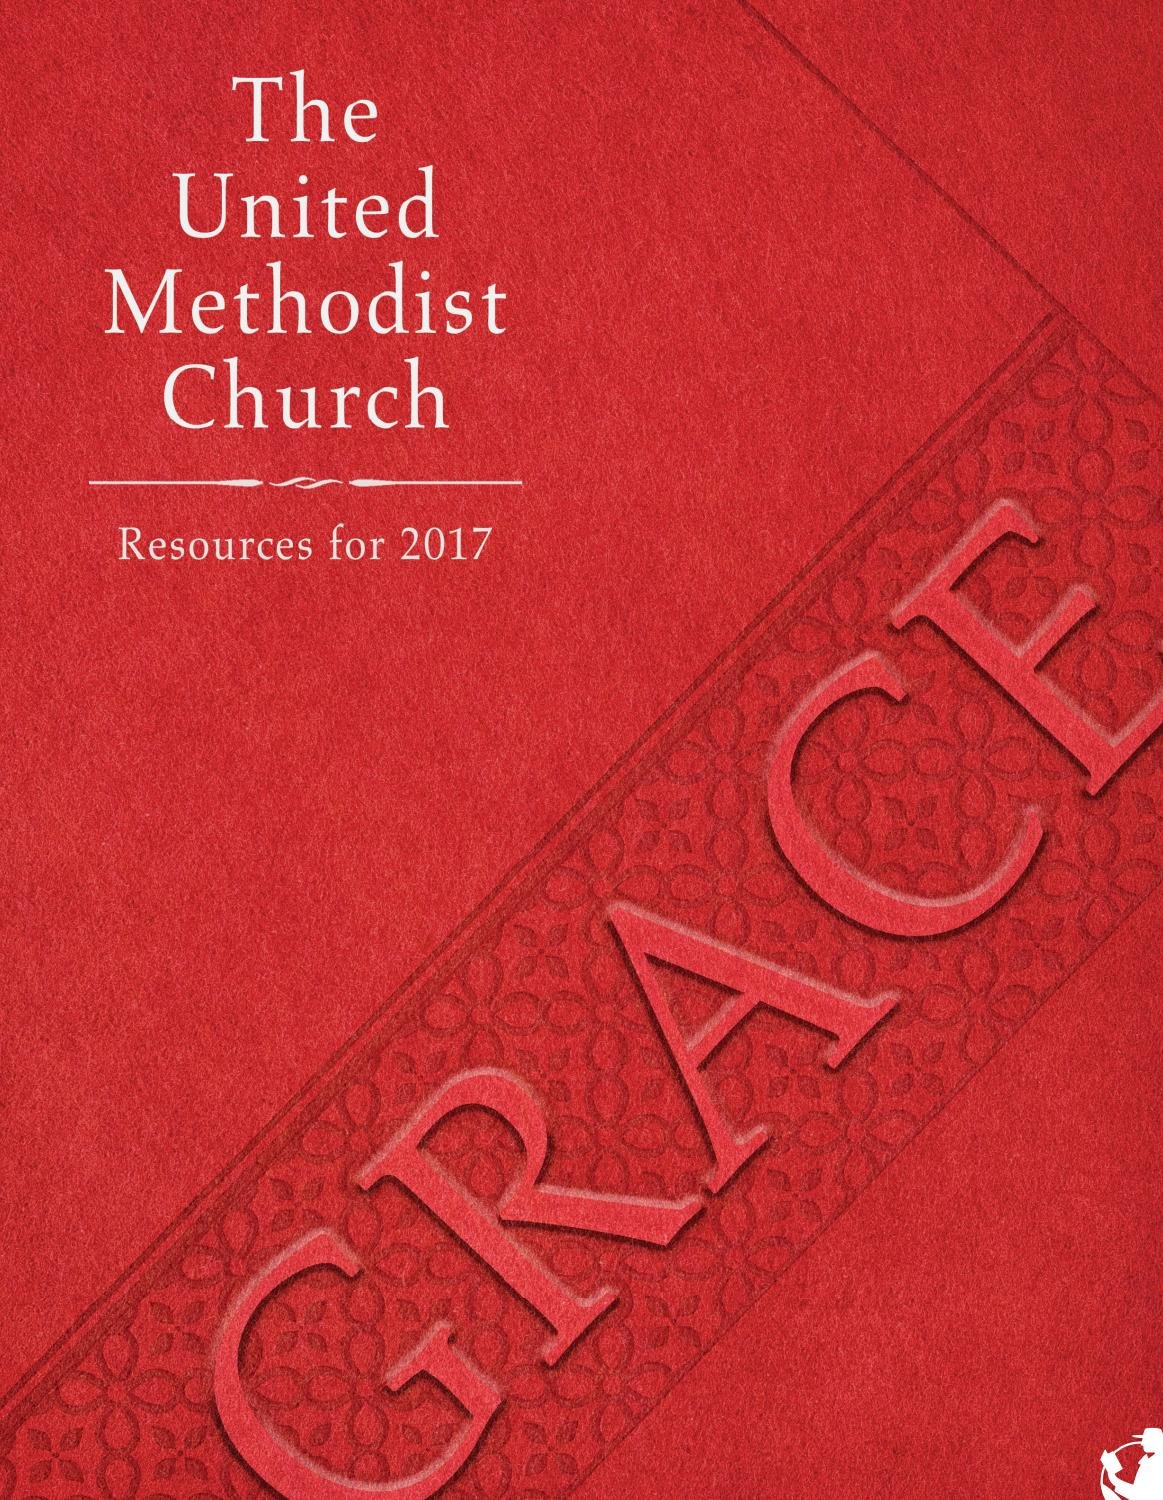 The united methodist church resources for 2017 by united methodist the united methodist church resources for 2017 by united methodist publishing house cokesbury issuu fandeluxe Gallery